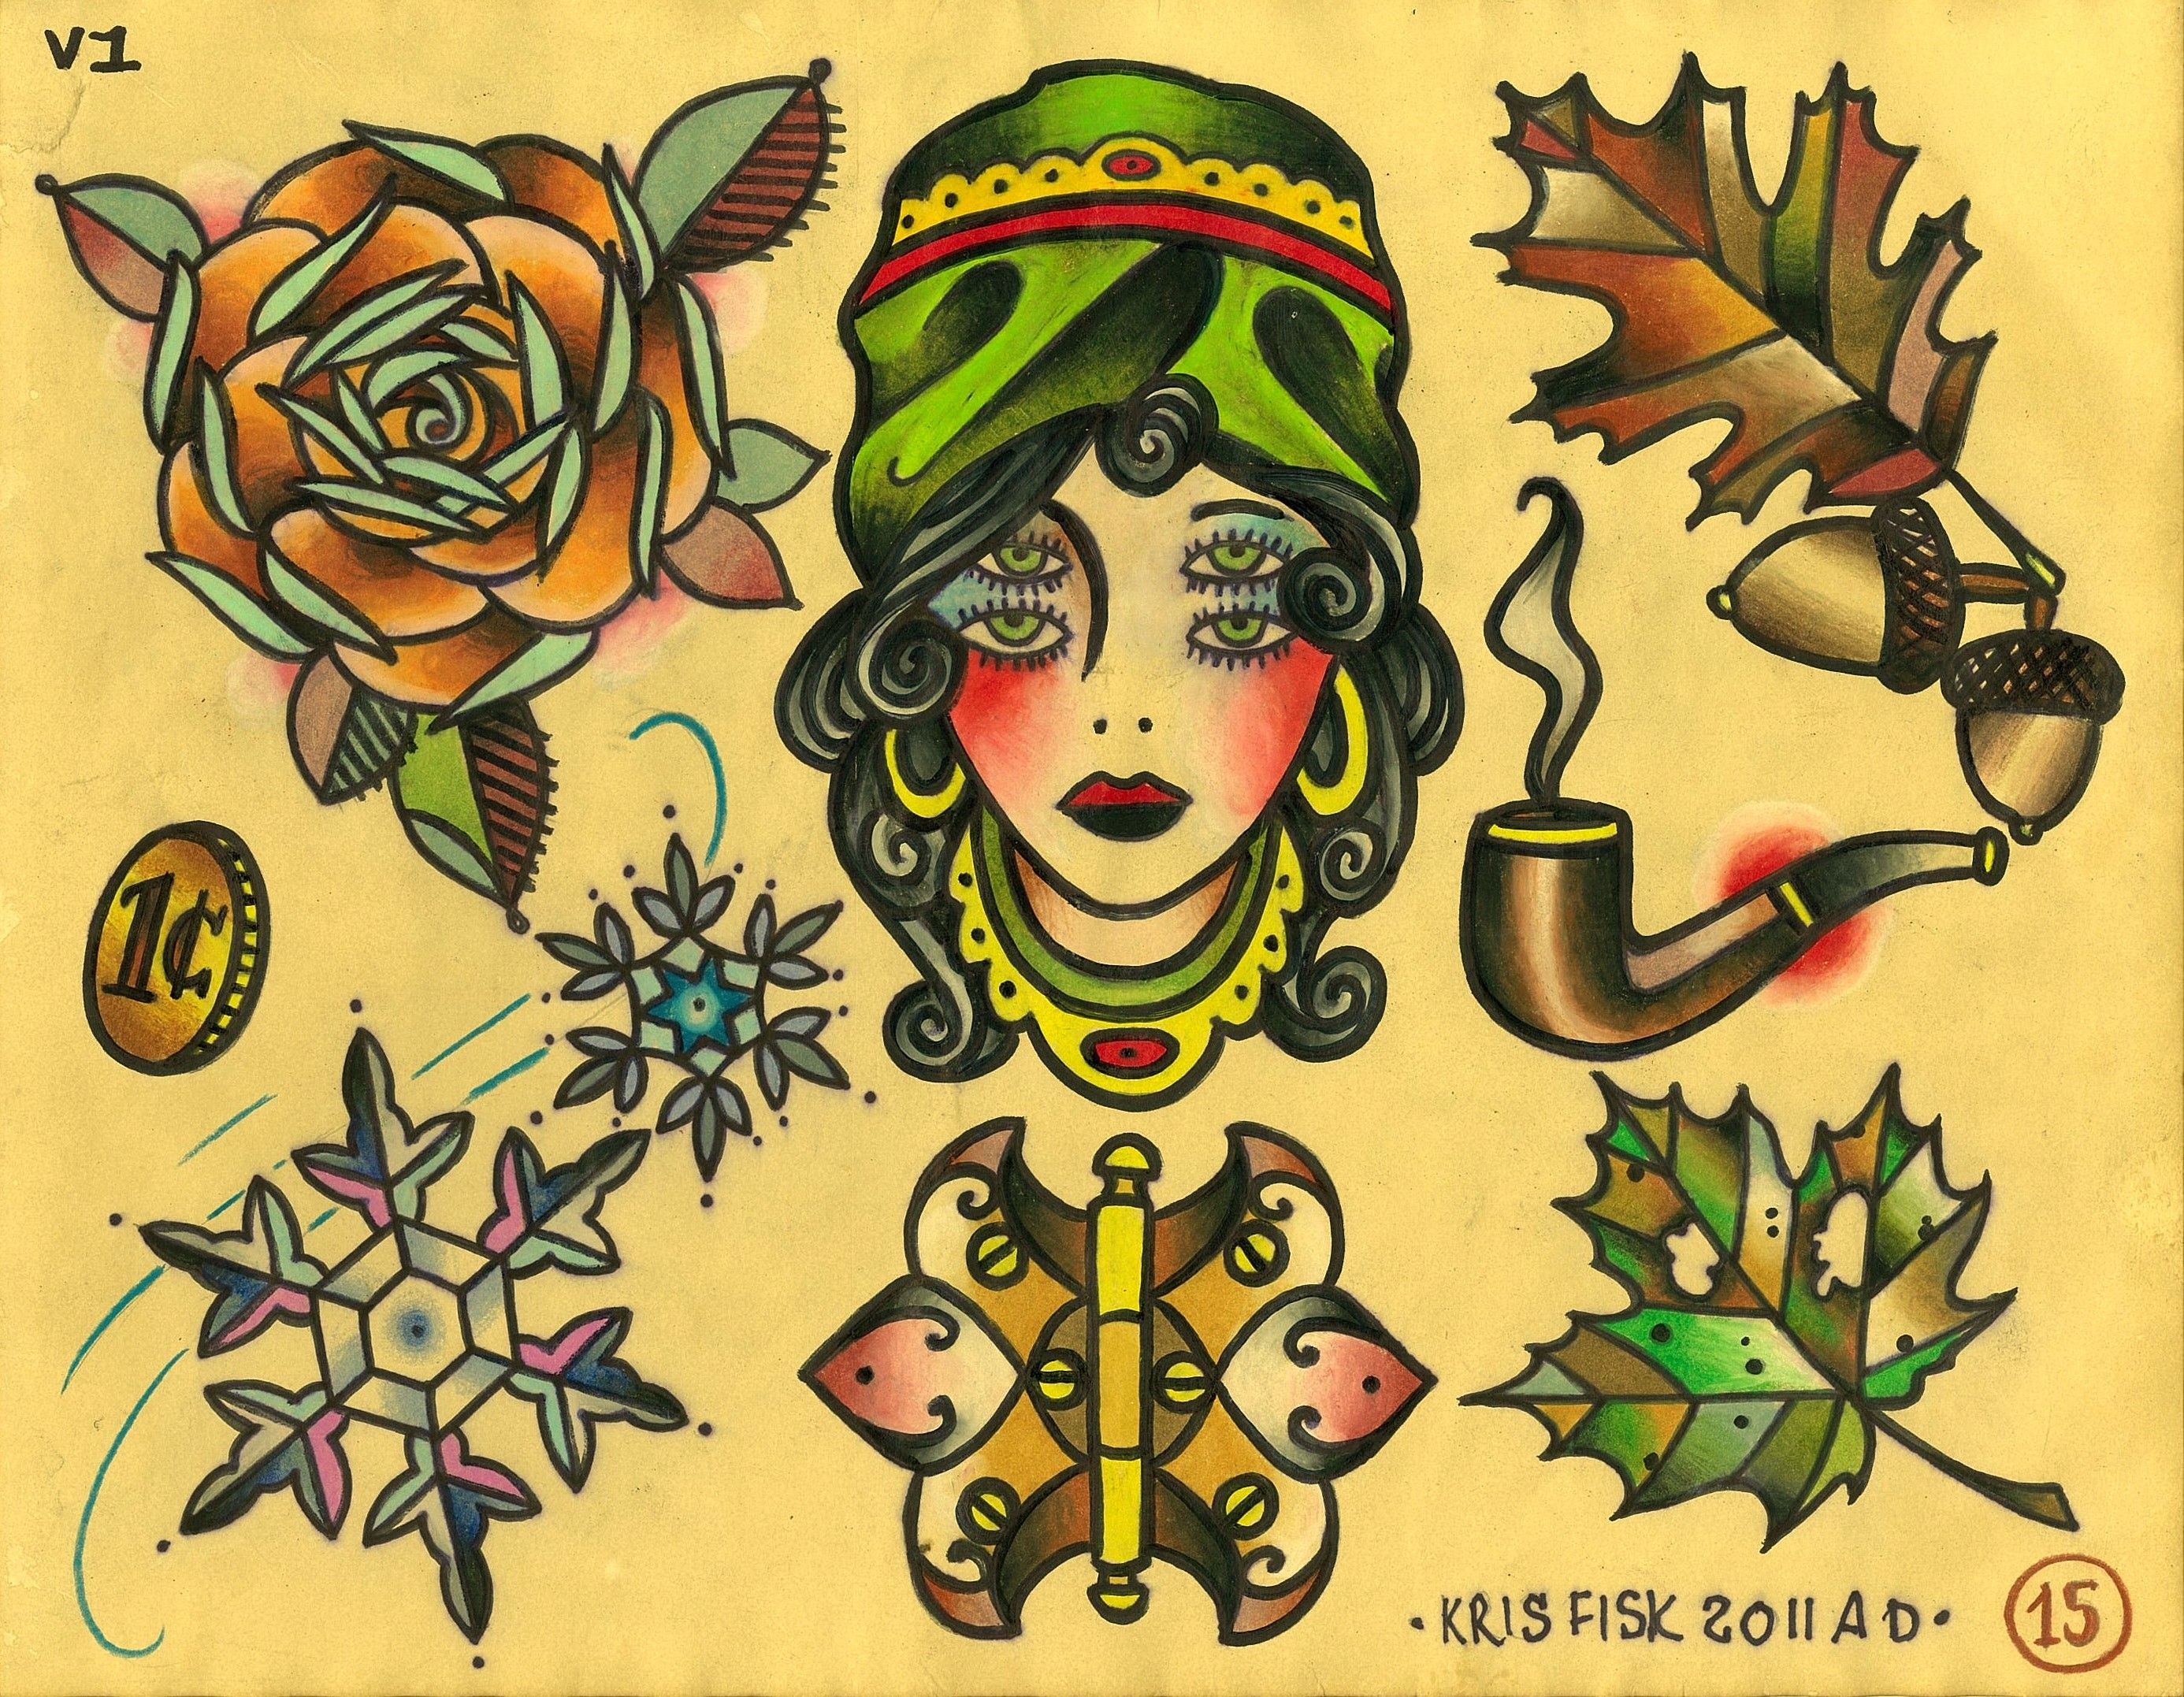 Tattoo Flash By Kris Fisk Especially Like The Multi Eyed Lady In The Middle Krisfis Traditional Tattoo Wallpaper Traditional Tattoo Flash Traditional Tattoo Traditional tattoo flash wallpaper